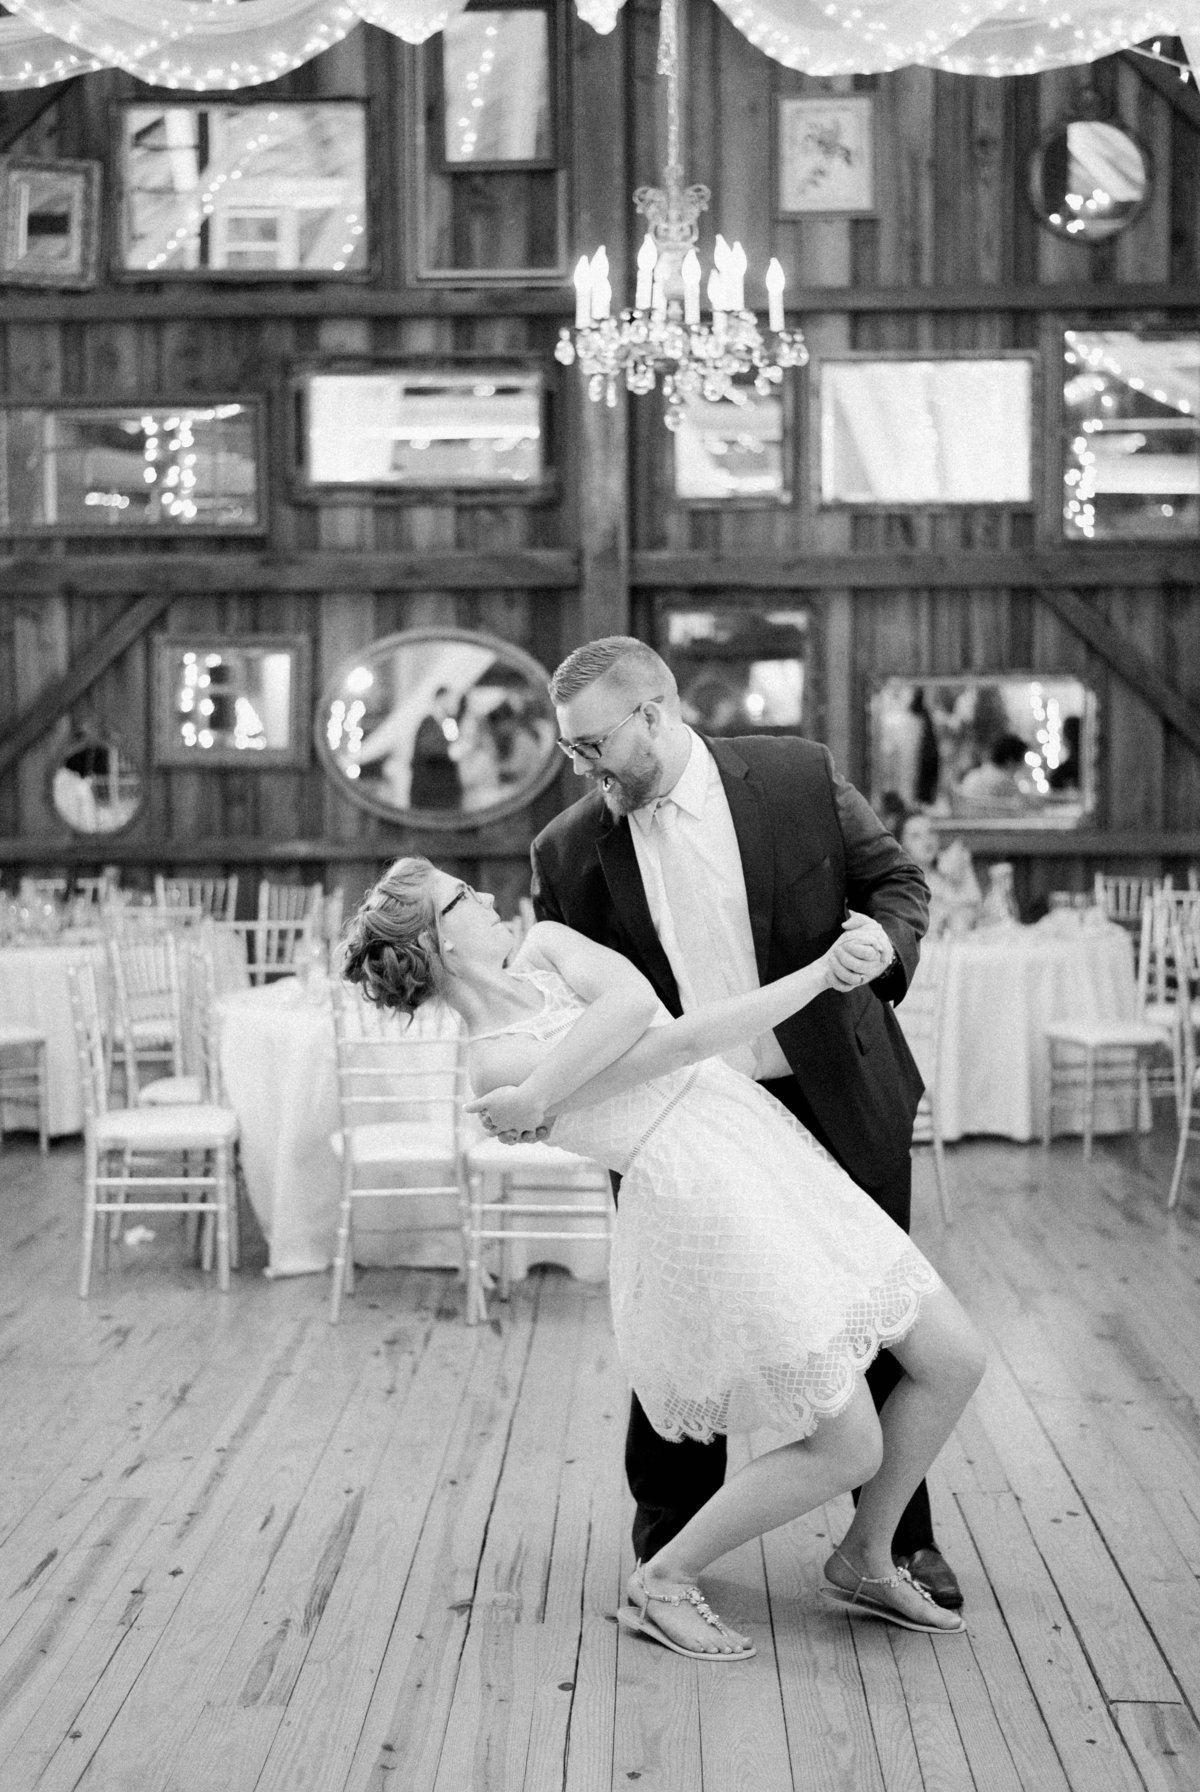 SorellaFarms_VirginiaWeddingPhotographer_BarnWedding_Lynchburgweddingphotographer_DanielleTyler+41(2)